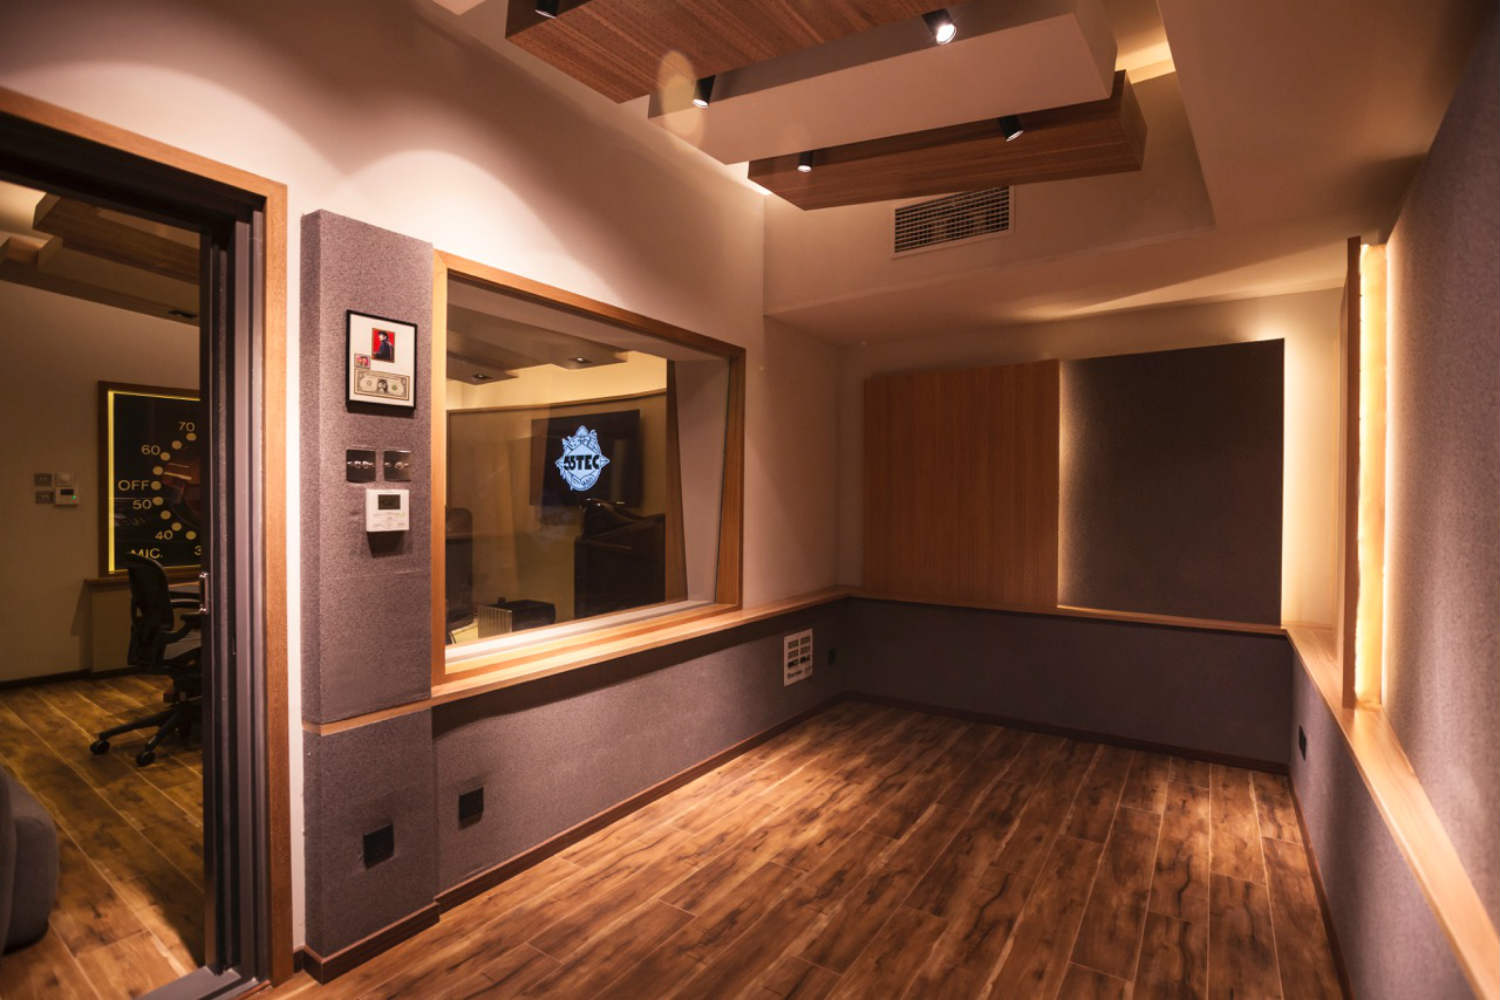 55TEC Studio in Beijing, China - New World-Class Recording Studio designed by WSDG owned by Li You. Live Room B / ISO